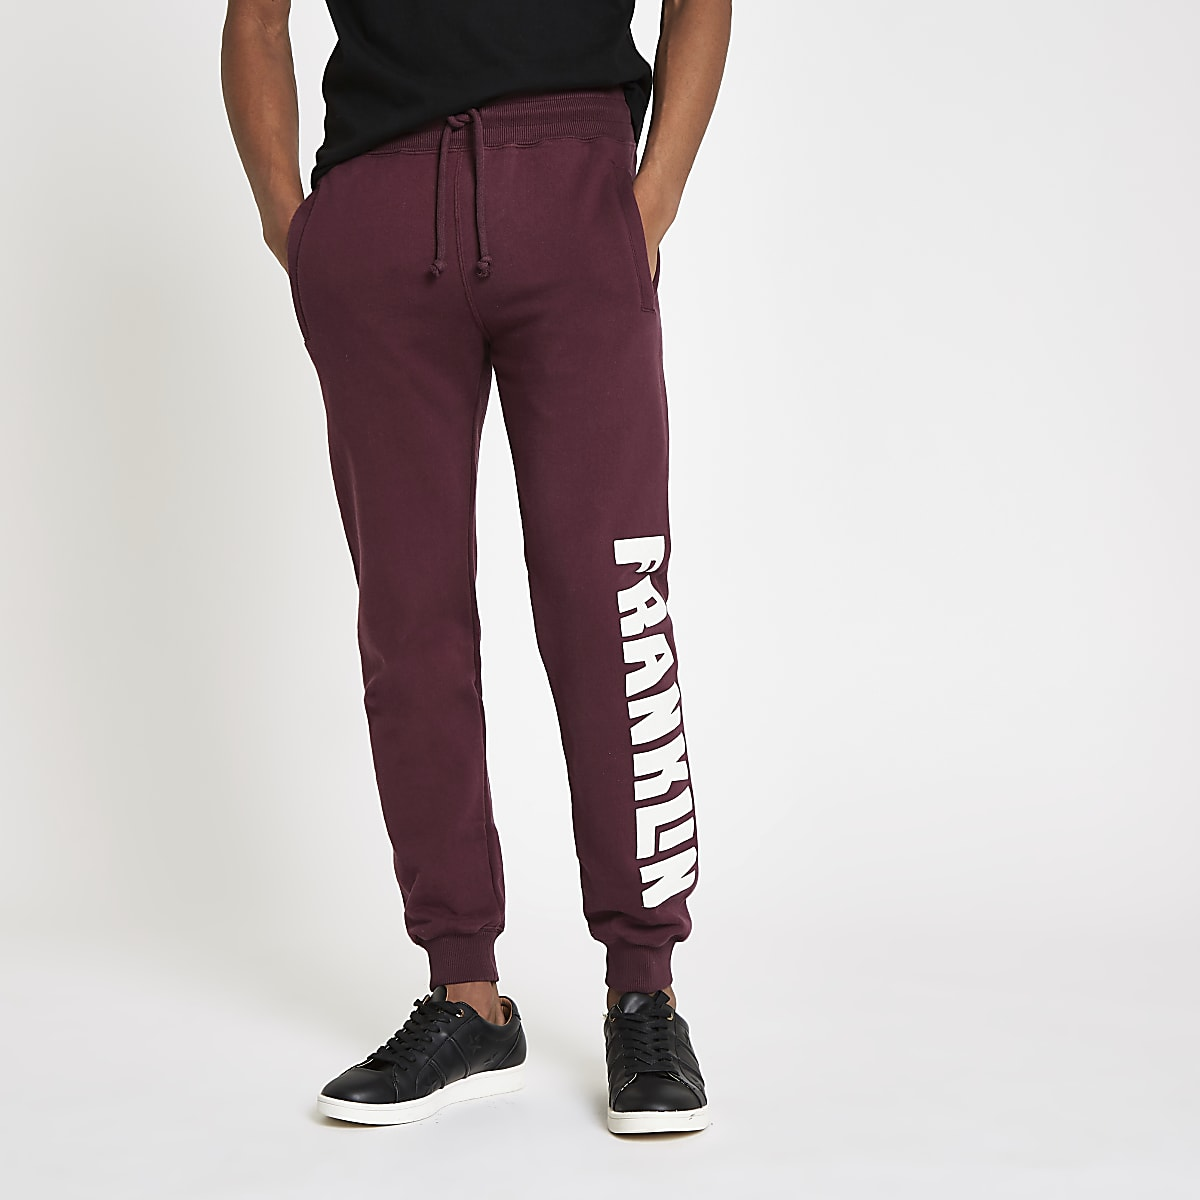 a7d7e05308 ... Franklin & Marshall – Pantalon de jogging en molleton bordeaux ...